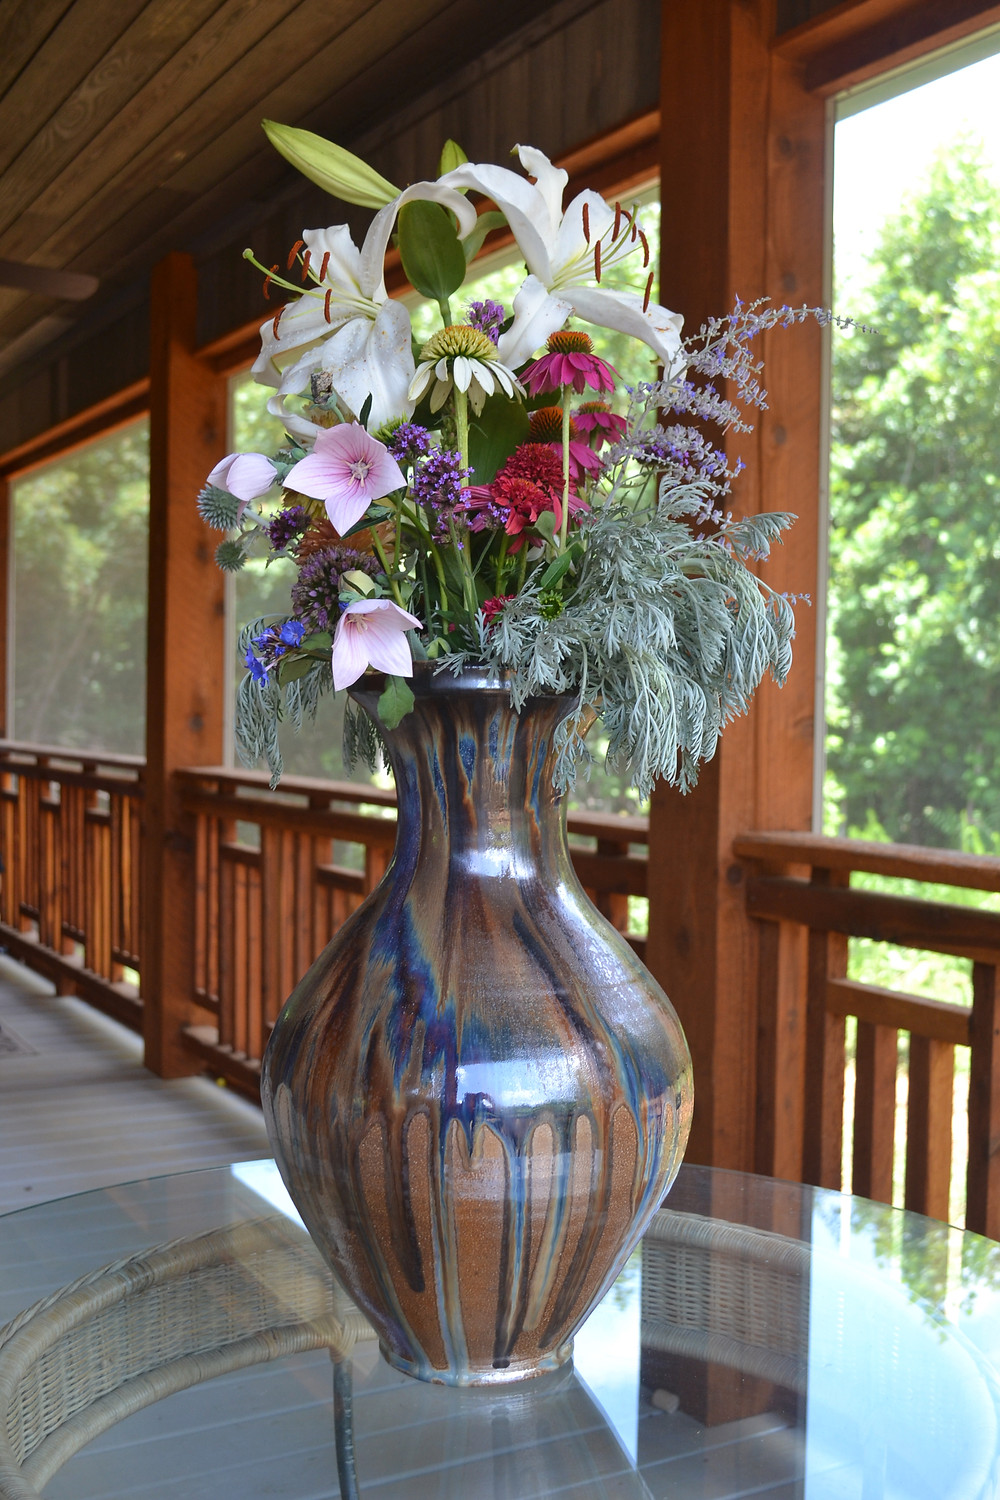 Joseph Sand Pottery Vase with Flowers